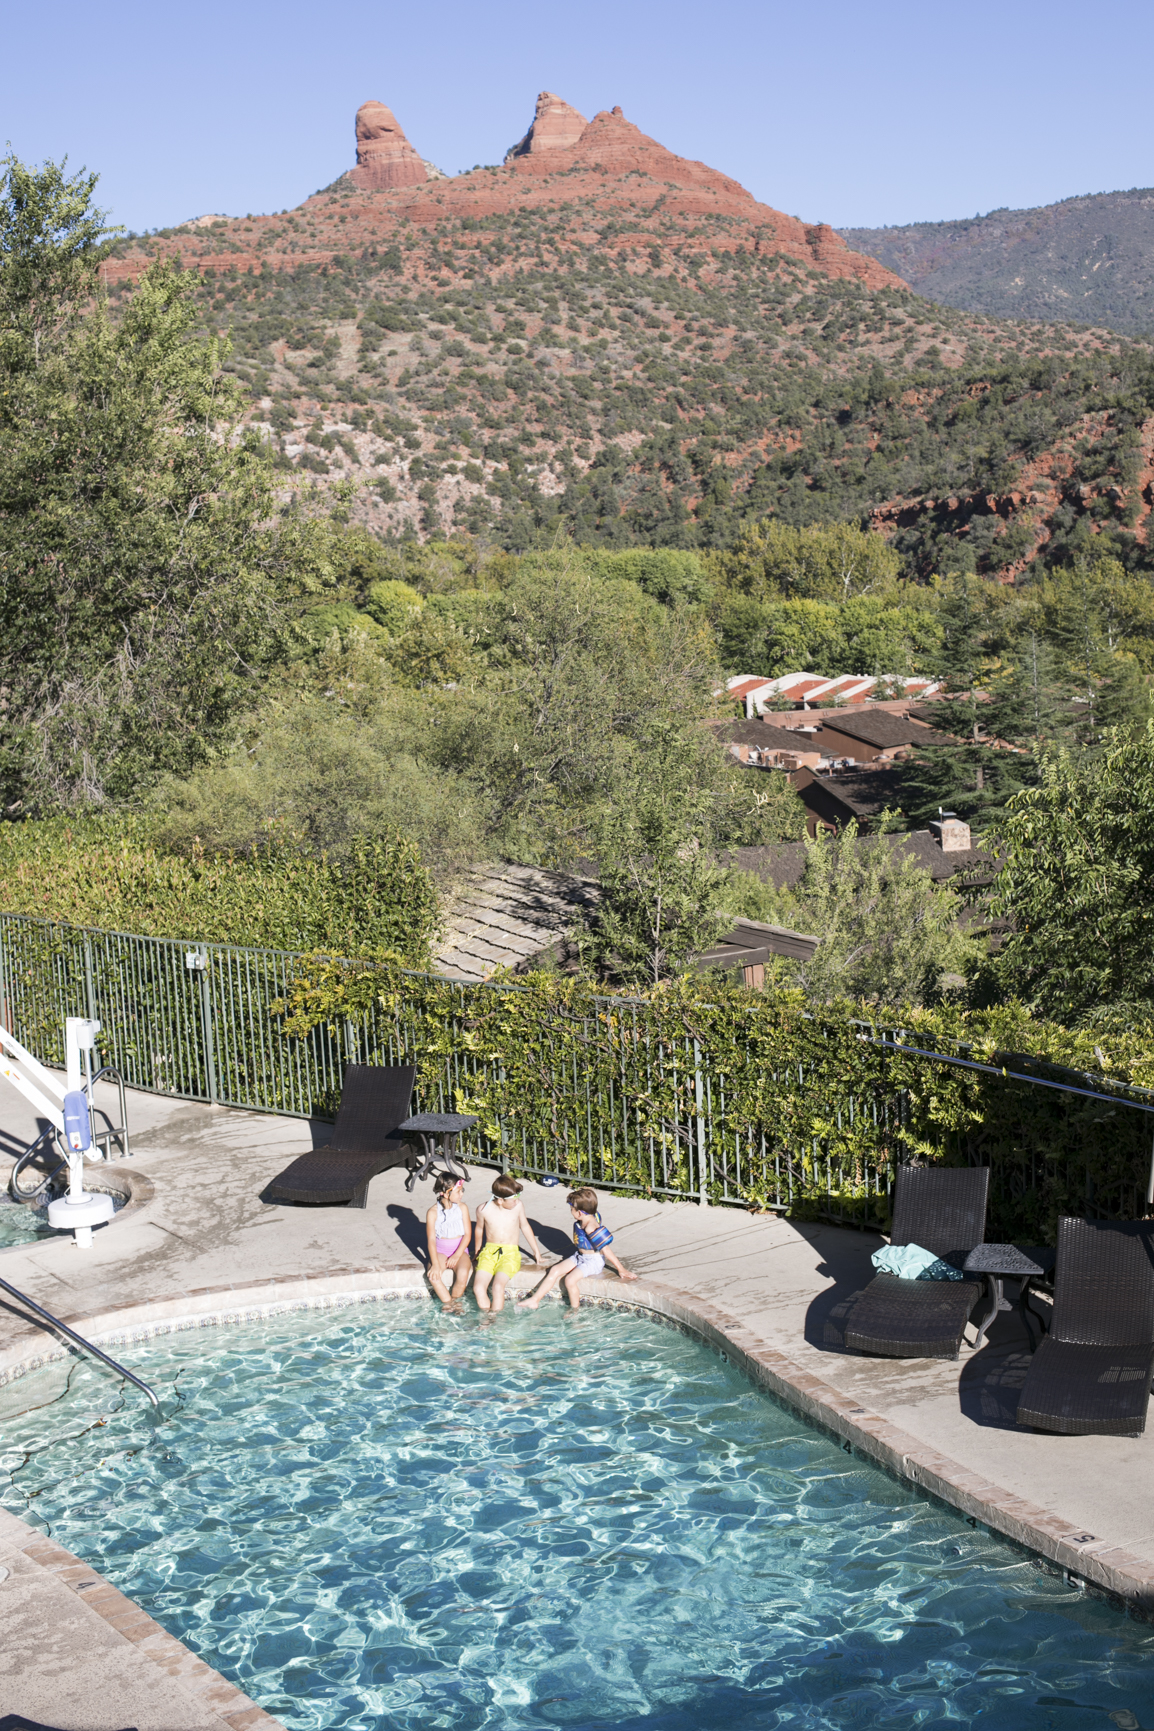 Swimming Pool at the Orchards Inn Sedona Arizona Hotel